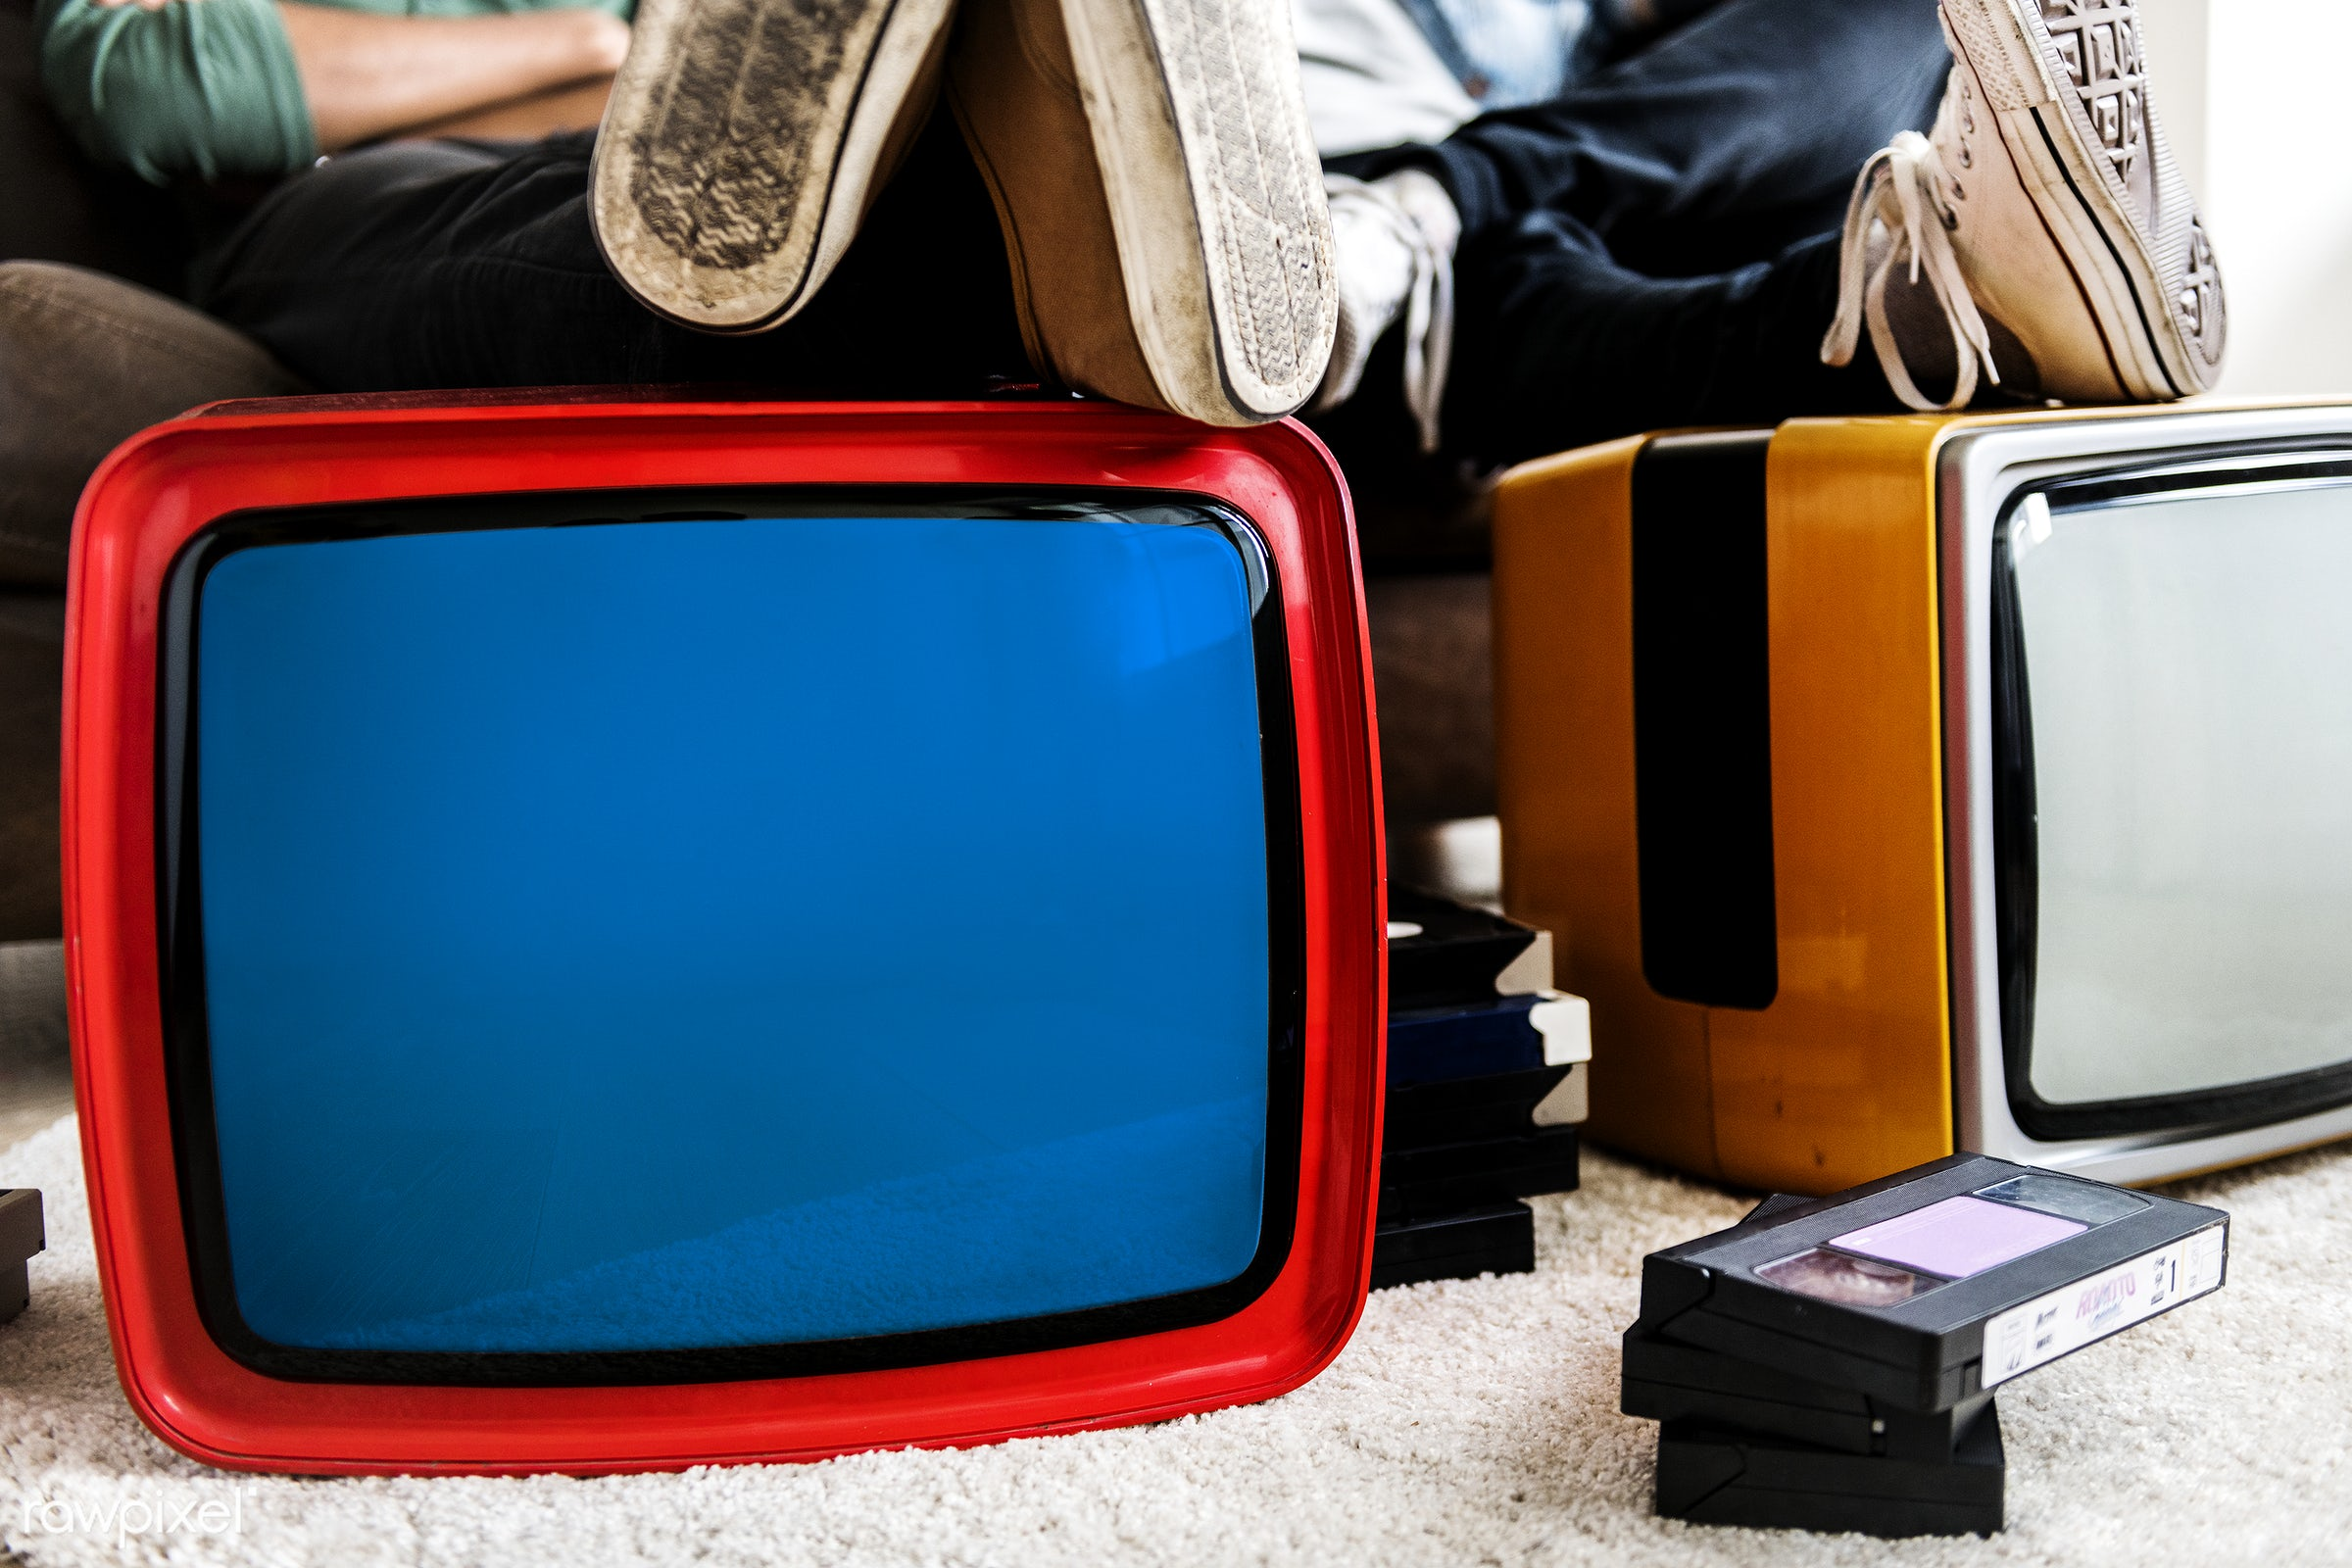 two man sitting next to retro televisions